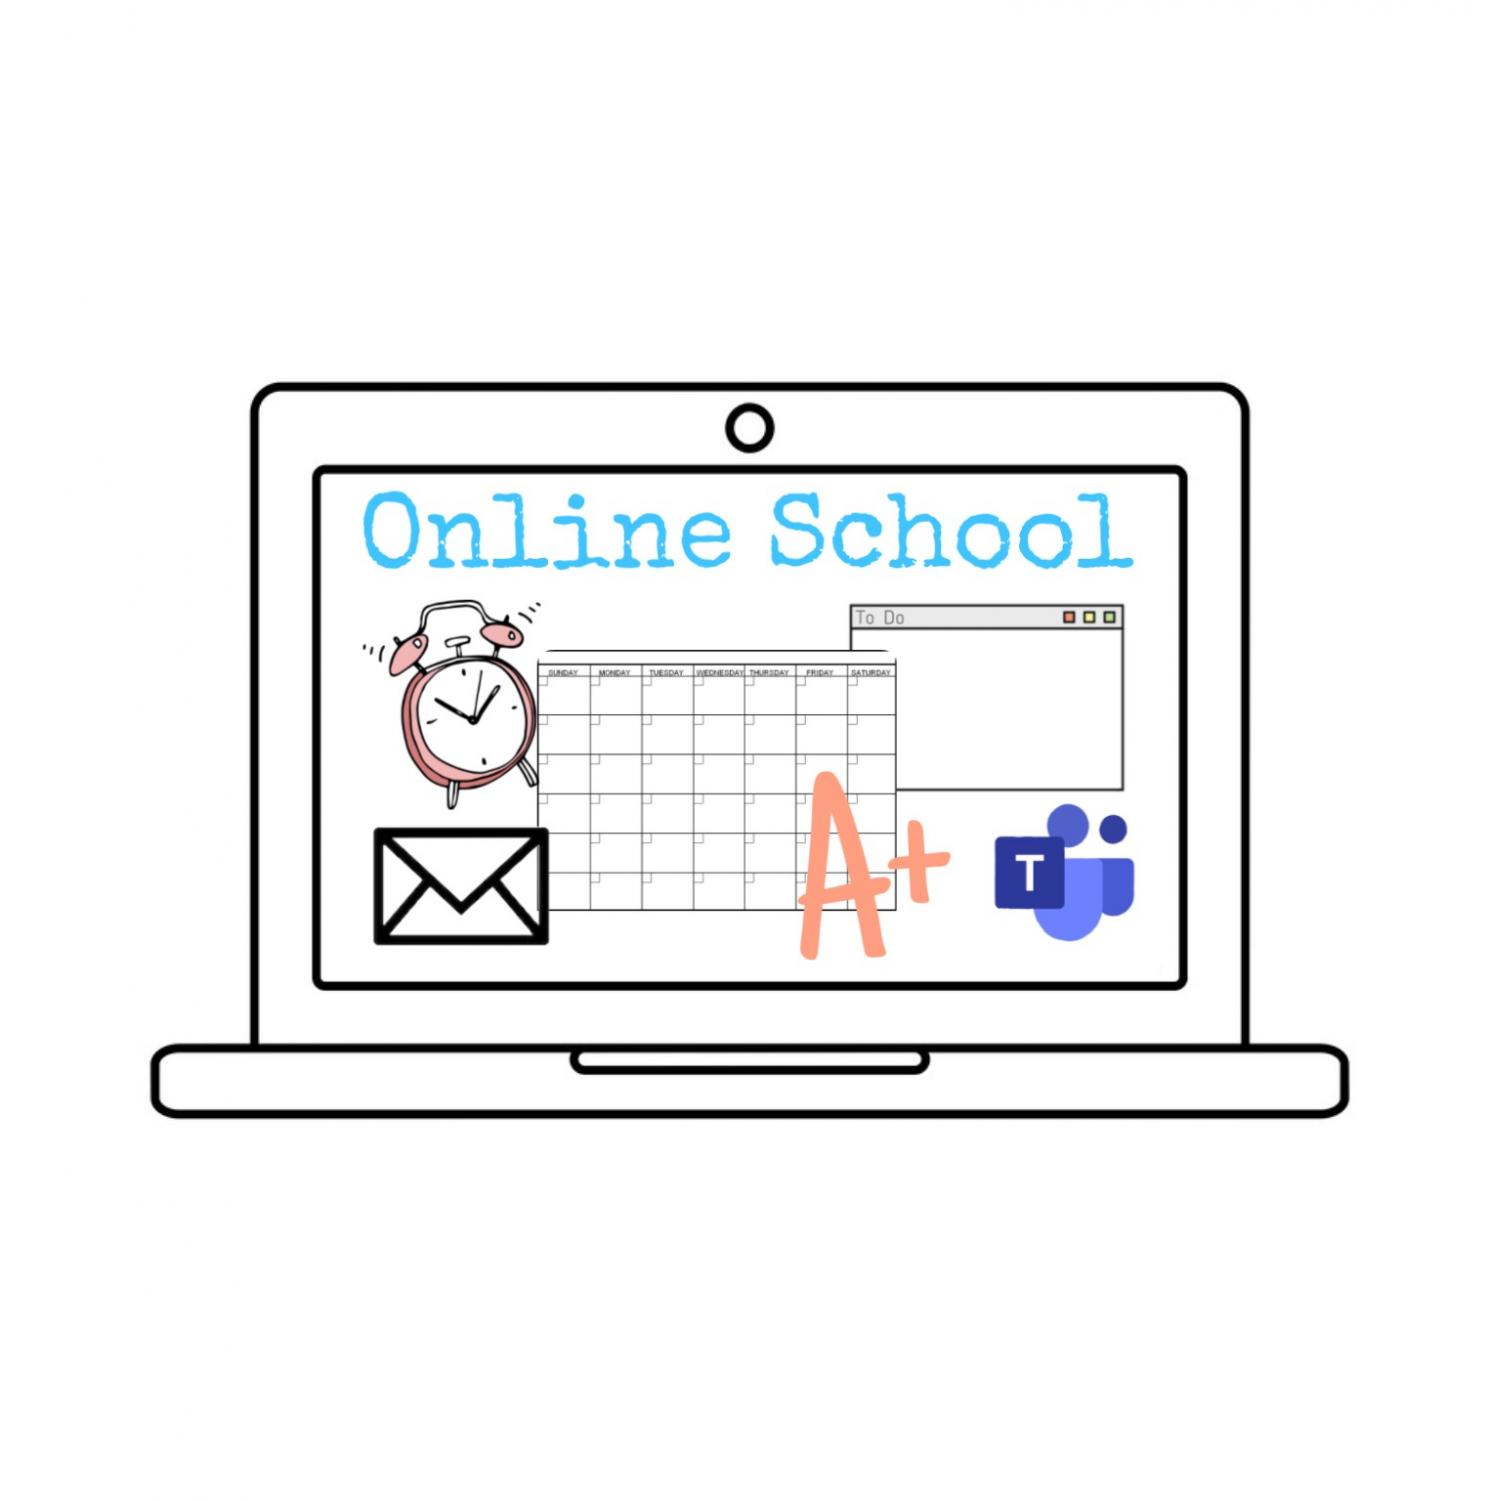 Online school is filled with benefits